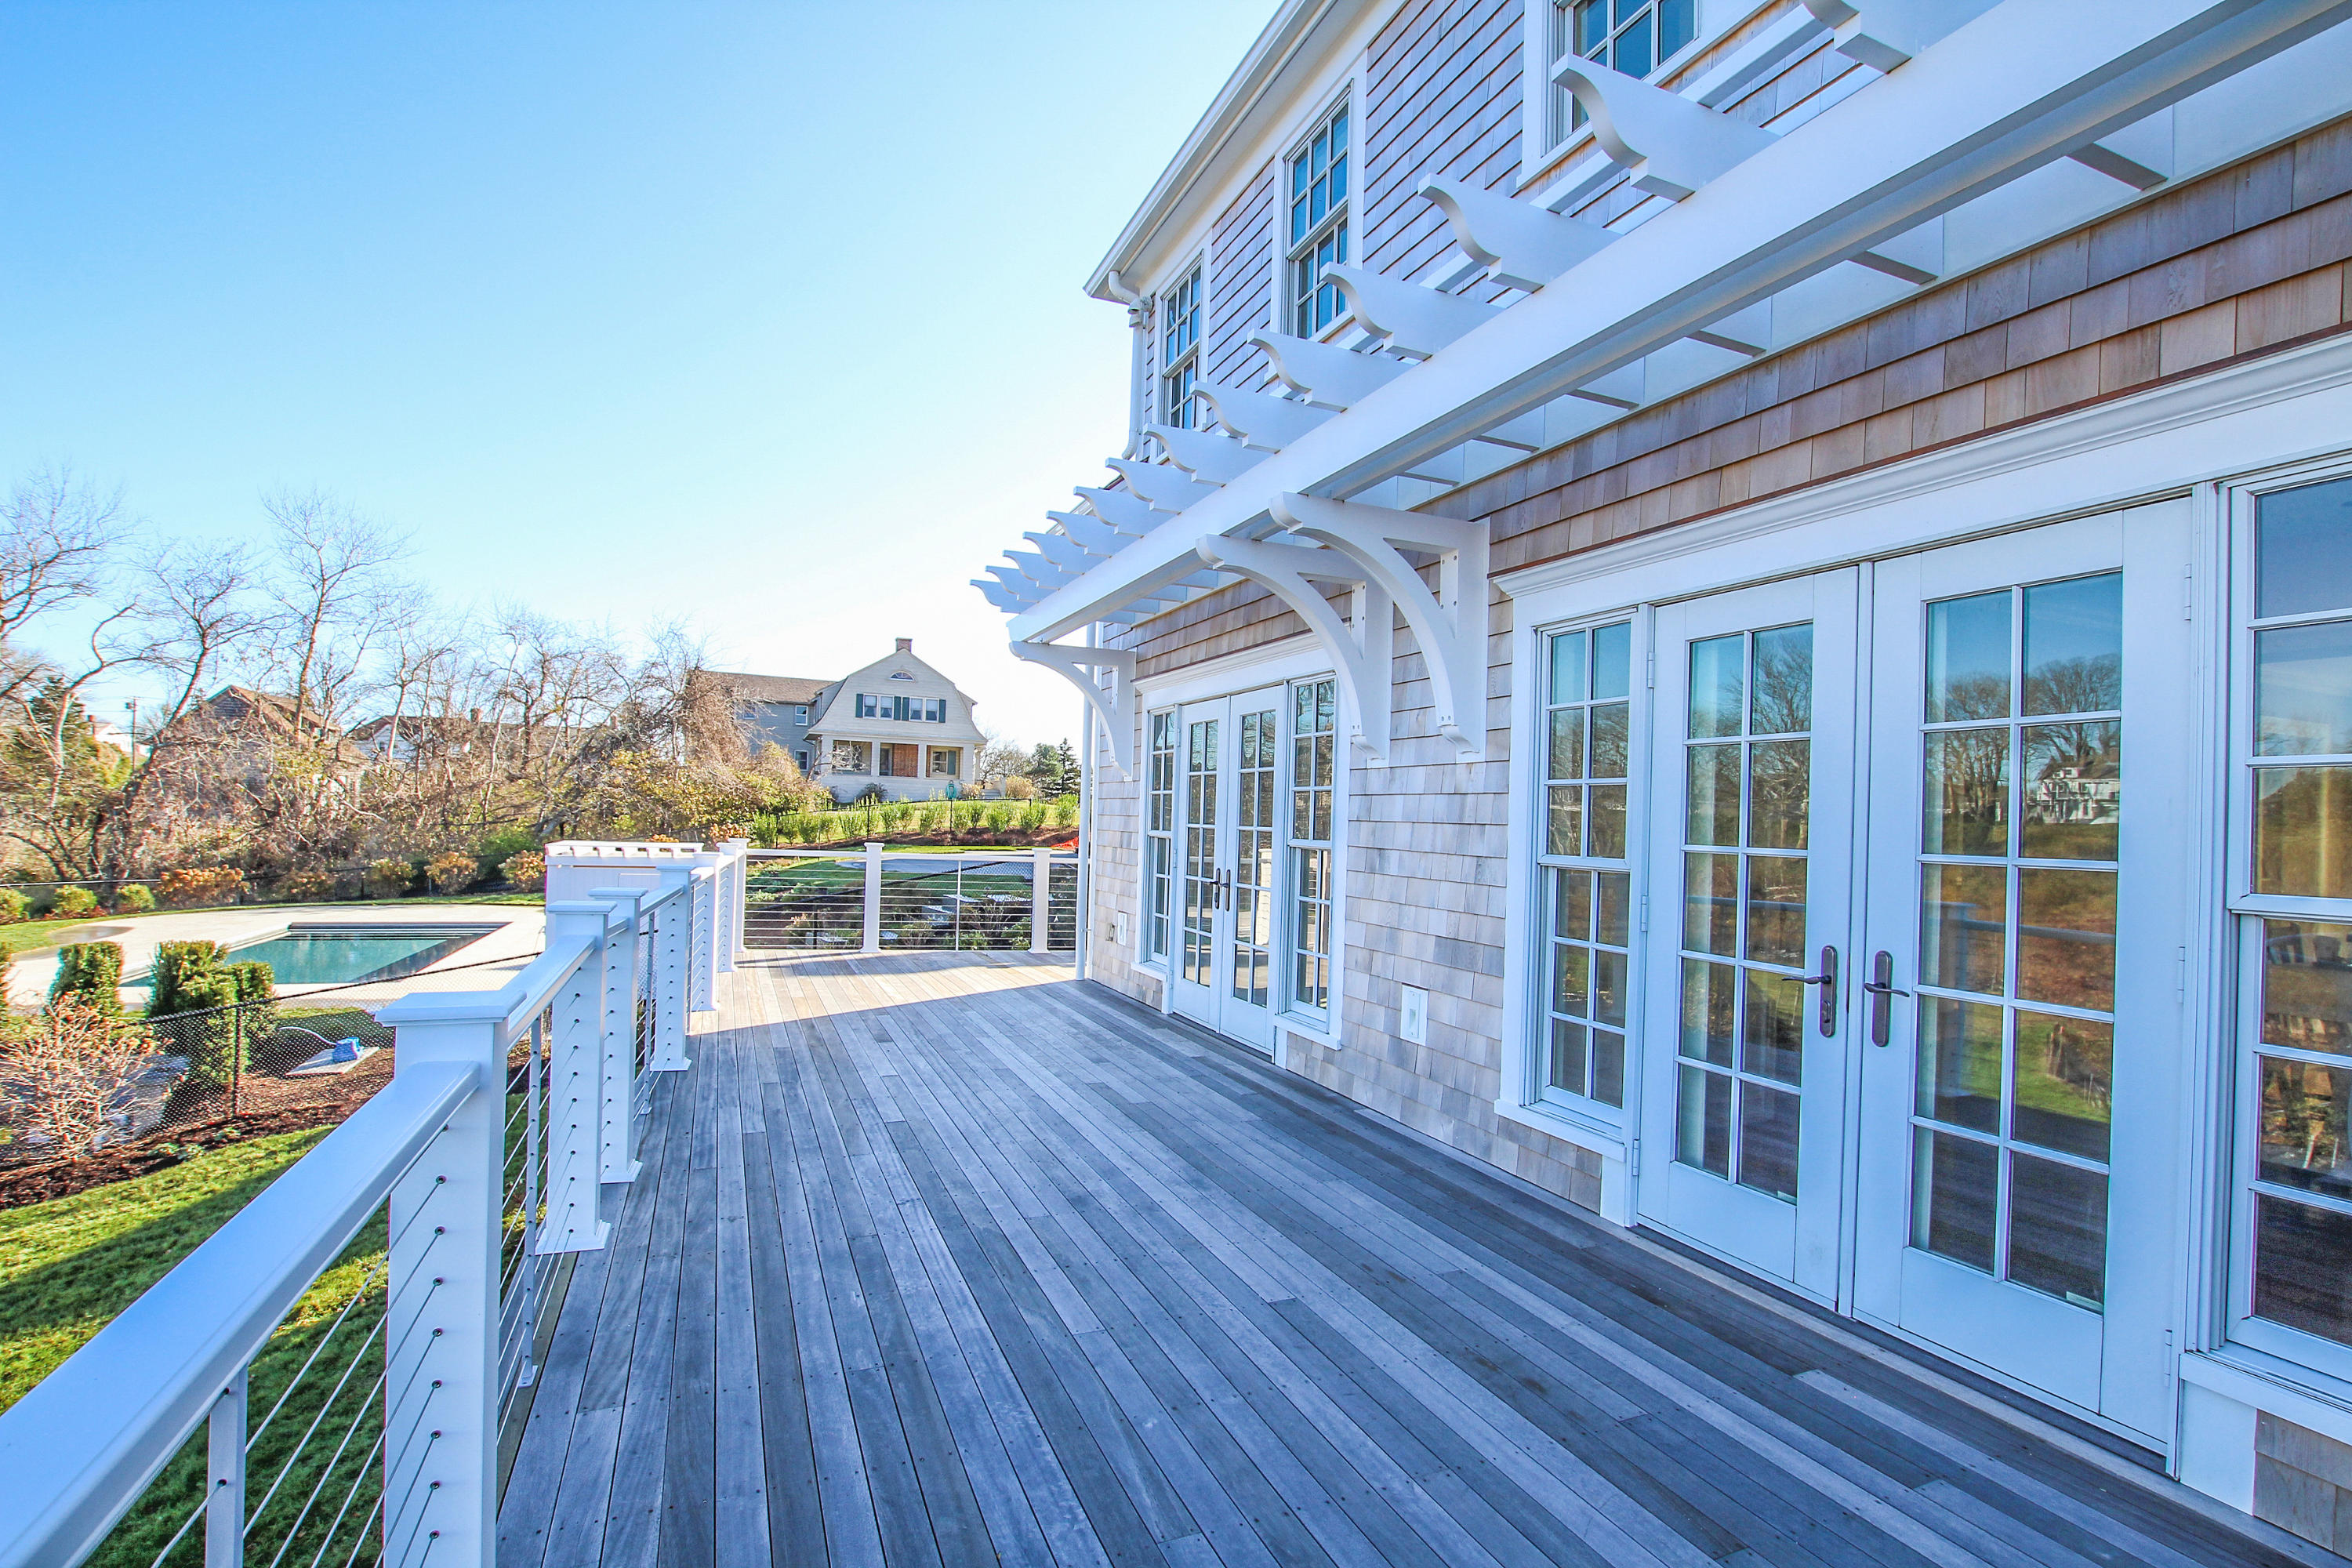 373 Bridge Street Chatham, MA 02633